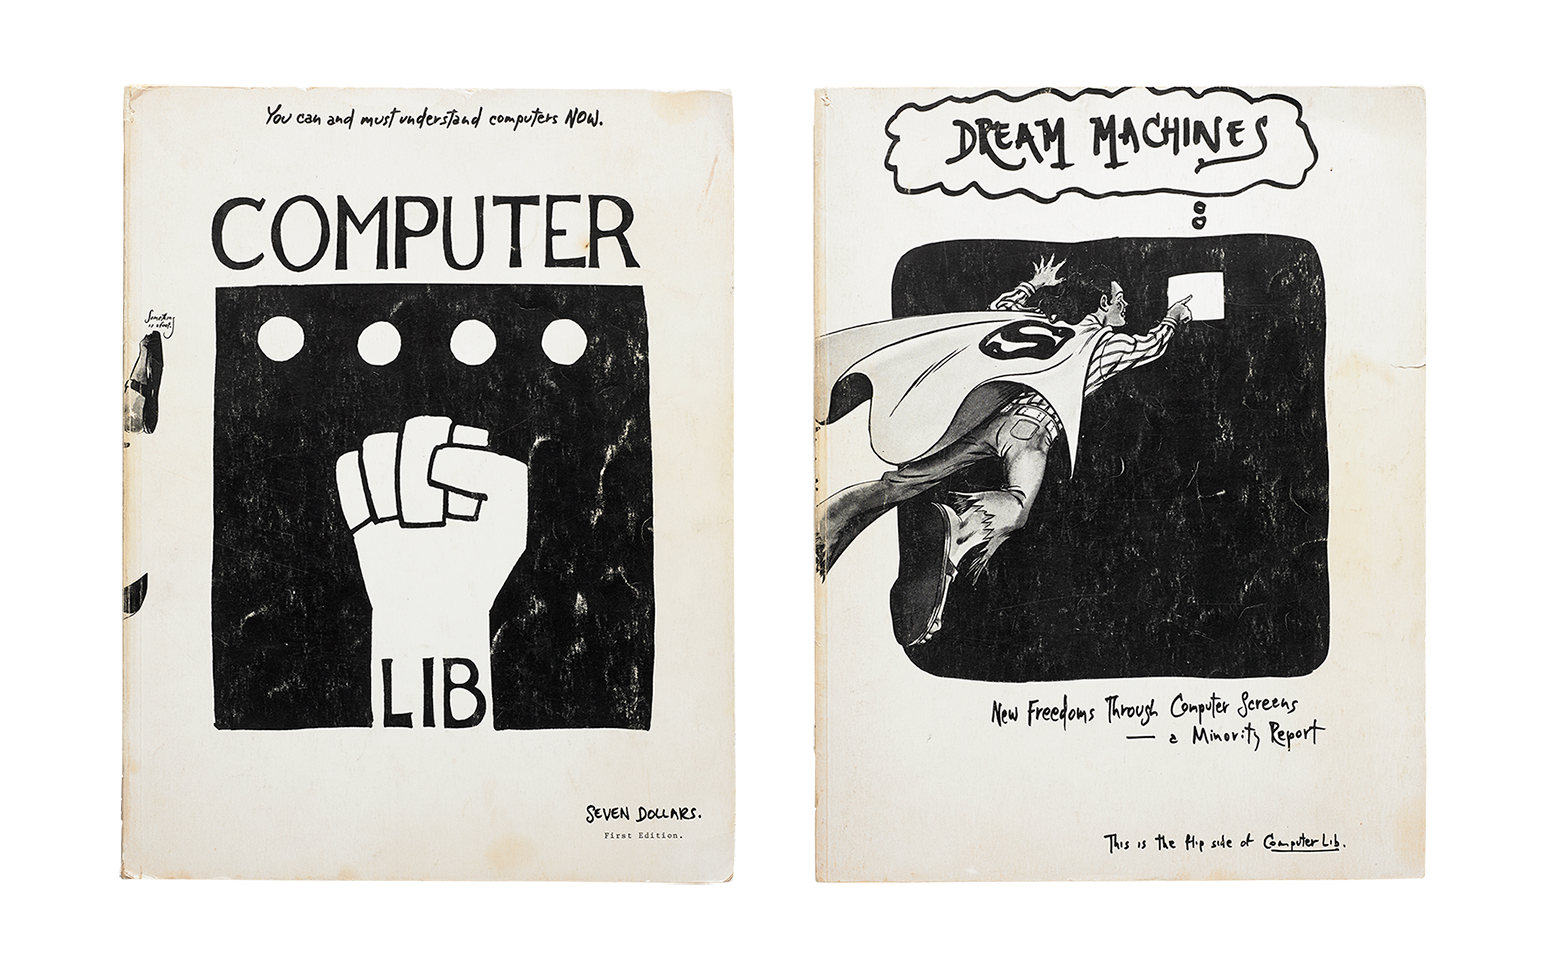 Ted_Nelson_Computer_Lib_Dream_Machines_2